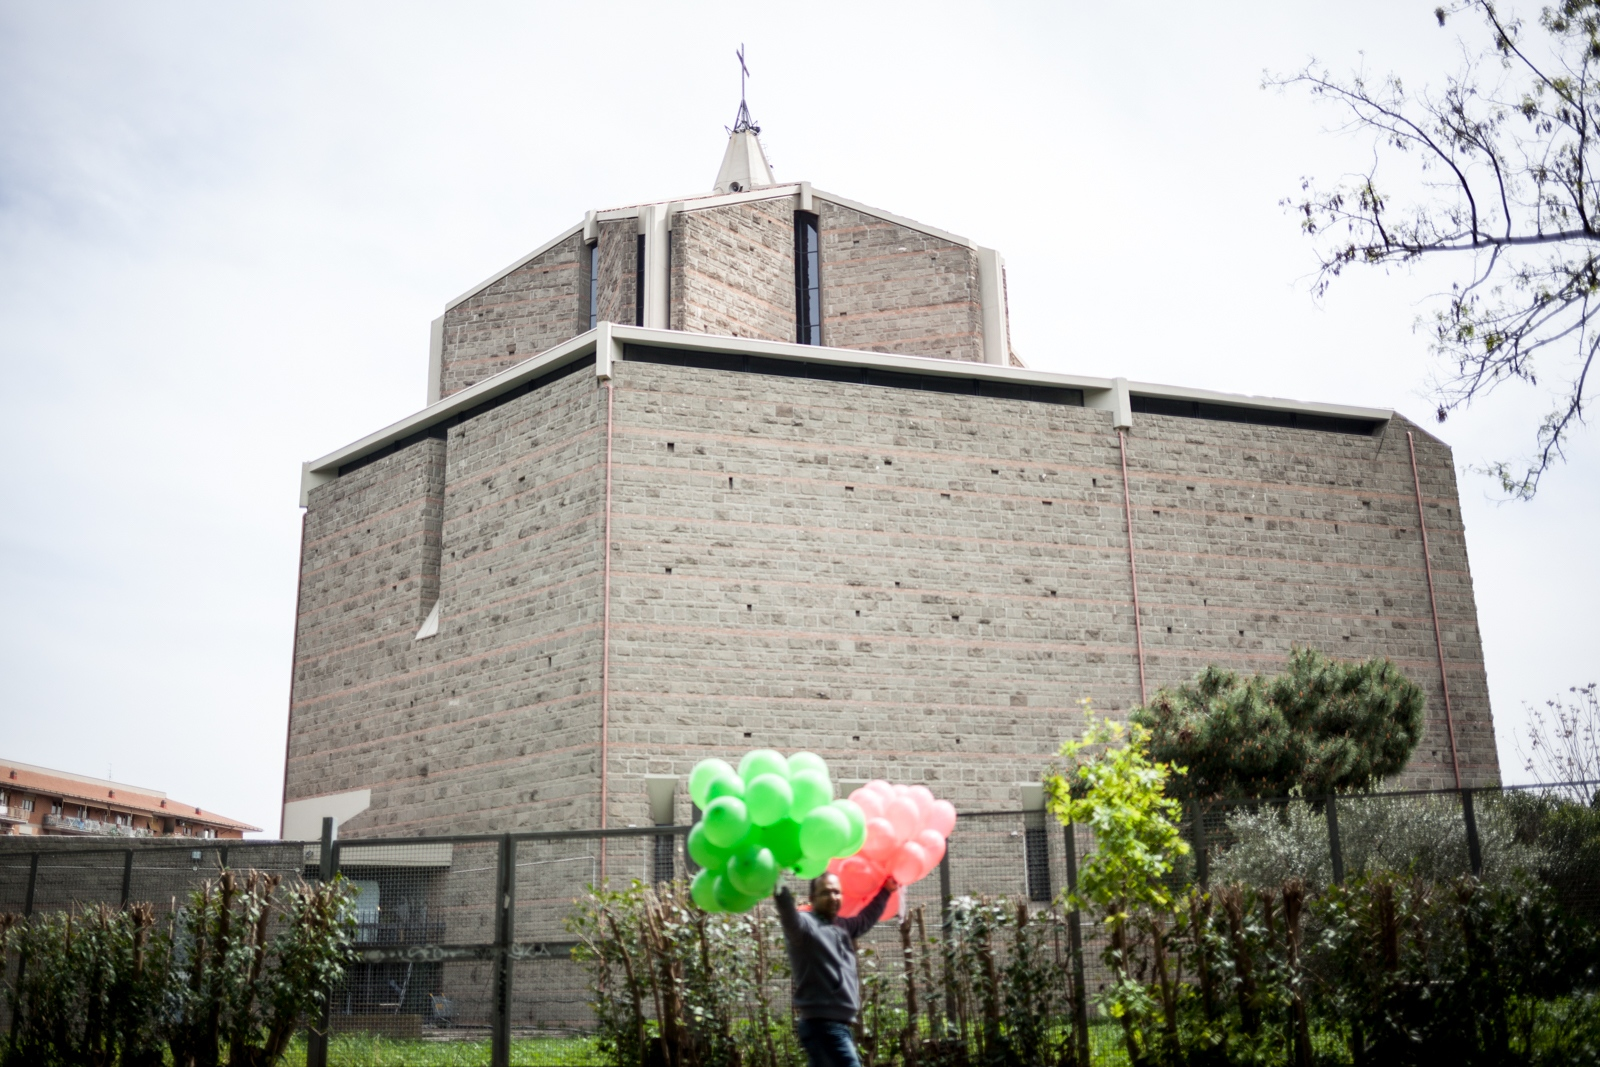 Apr. 14, 2018 -A man brings balloons for the celebration of the Bangla New Year in a public park in southeastern Rome.  Hindus and muslims from Bangladesh gather every year in different areas of Rome to celebrate the event.